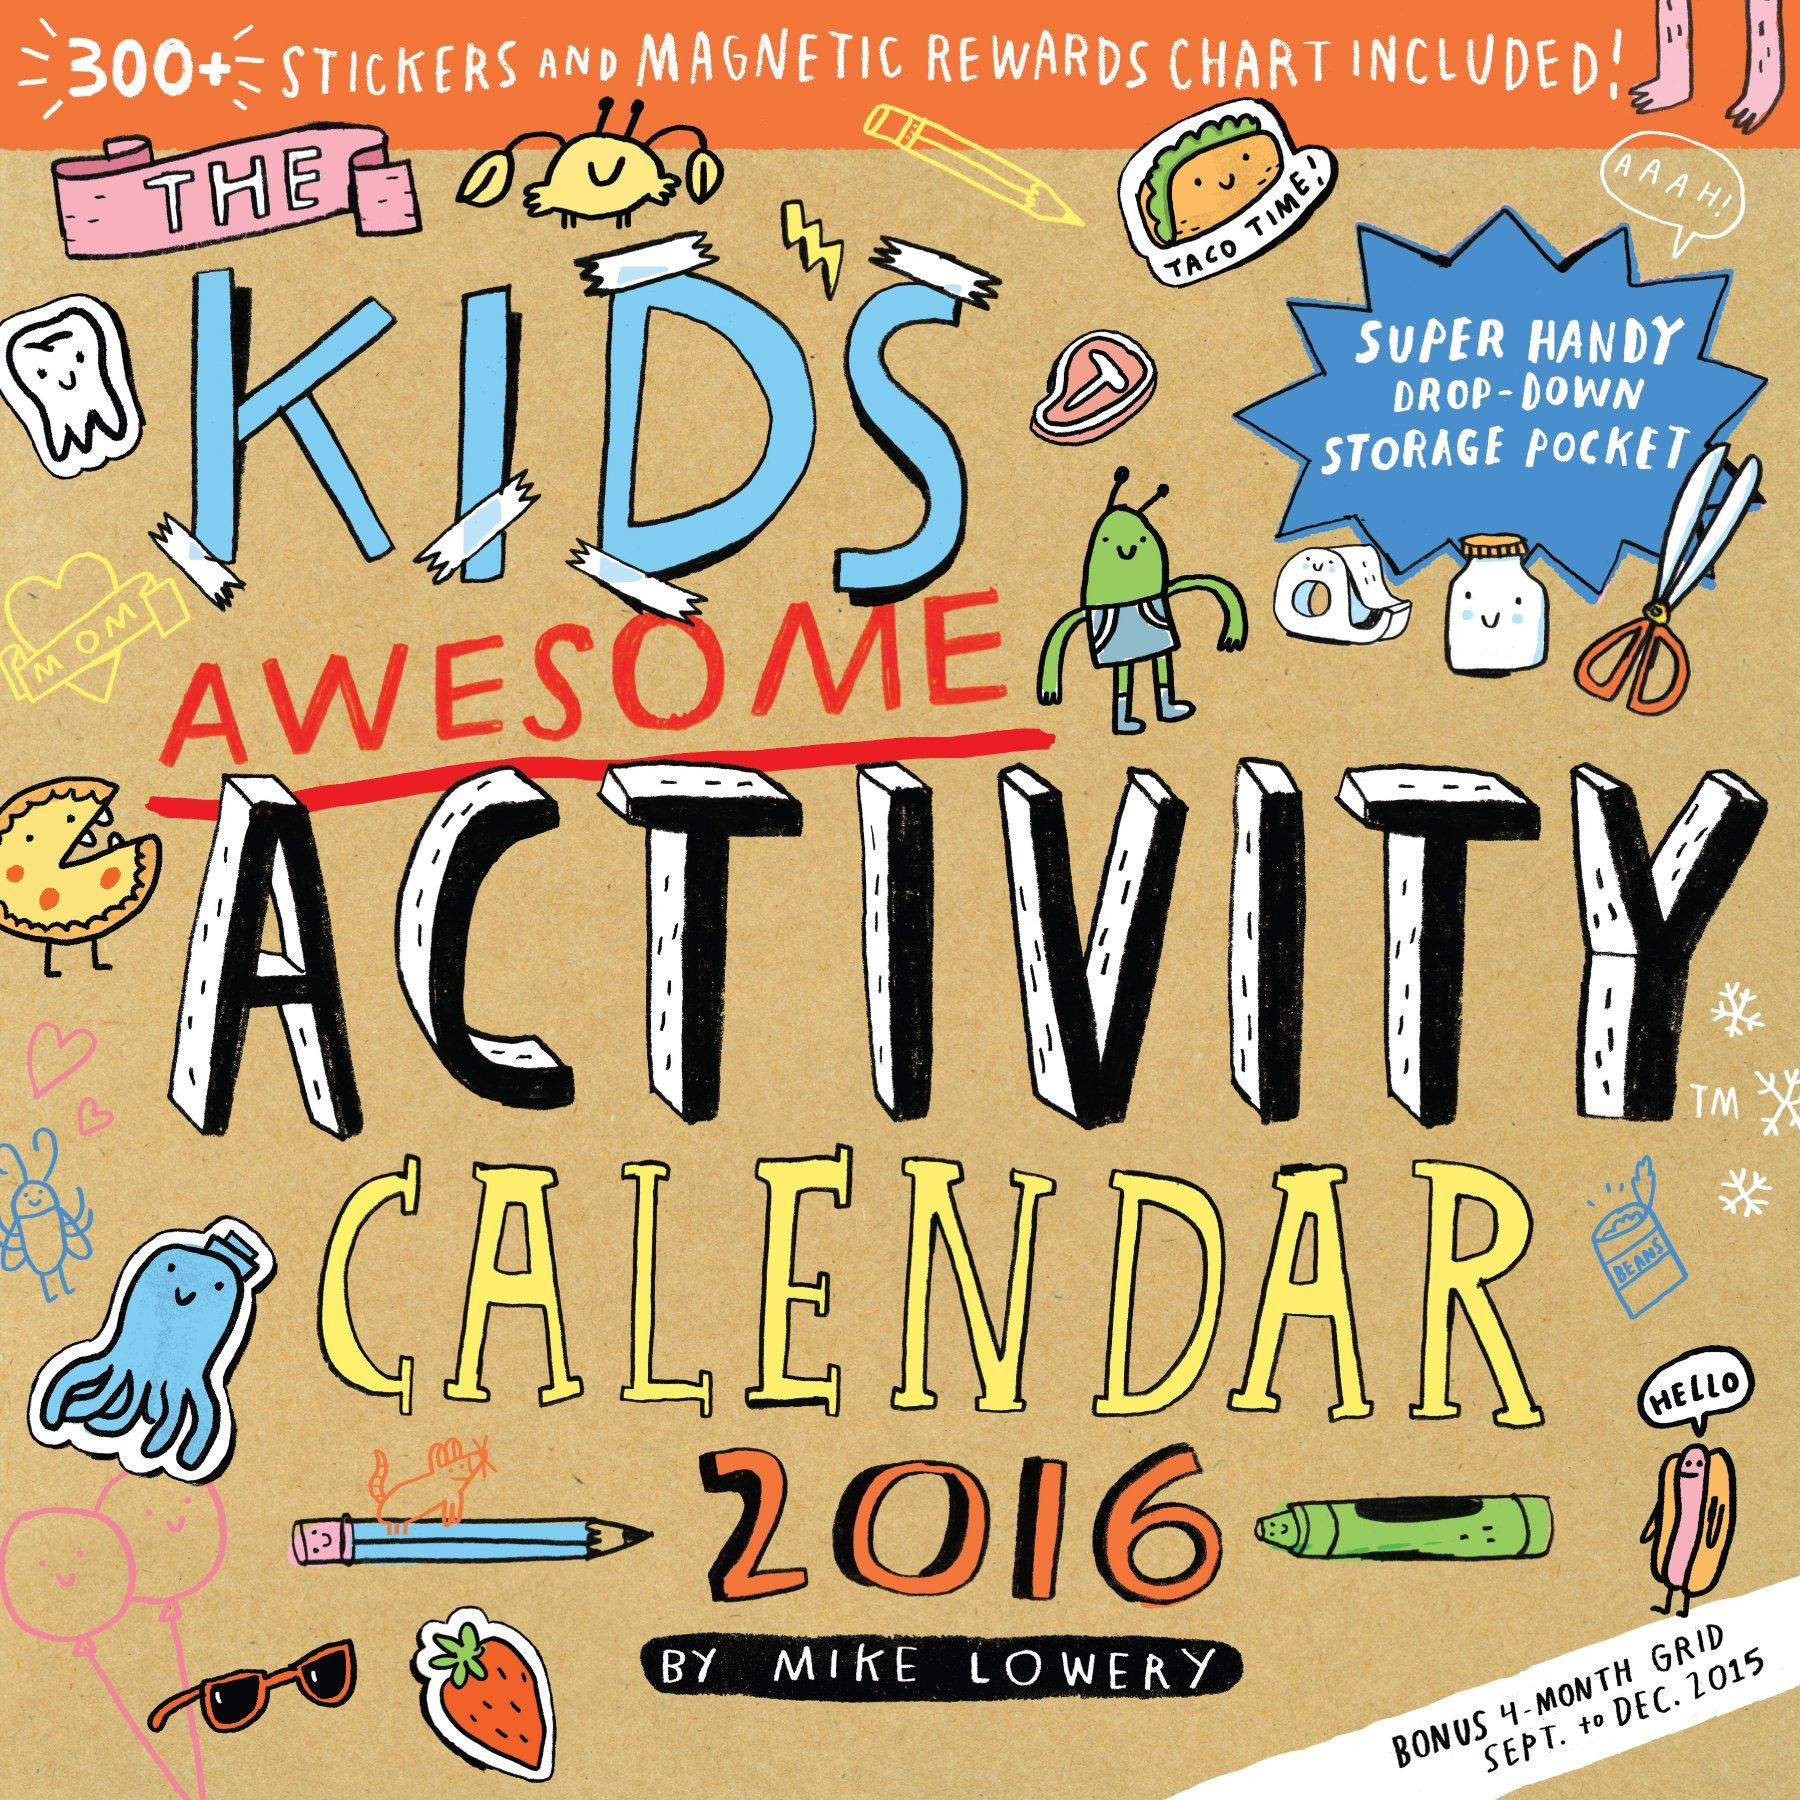 Kids Calendar With Activity Stickers : The kid s awesome activity wall calendar by mike lowery the